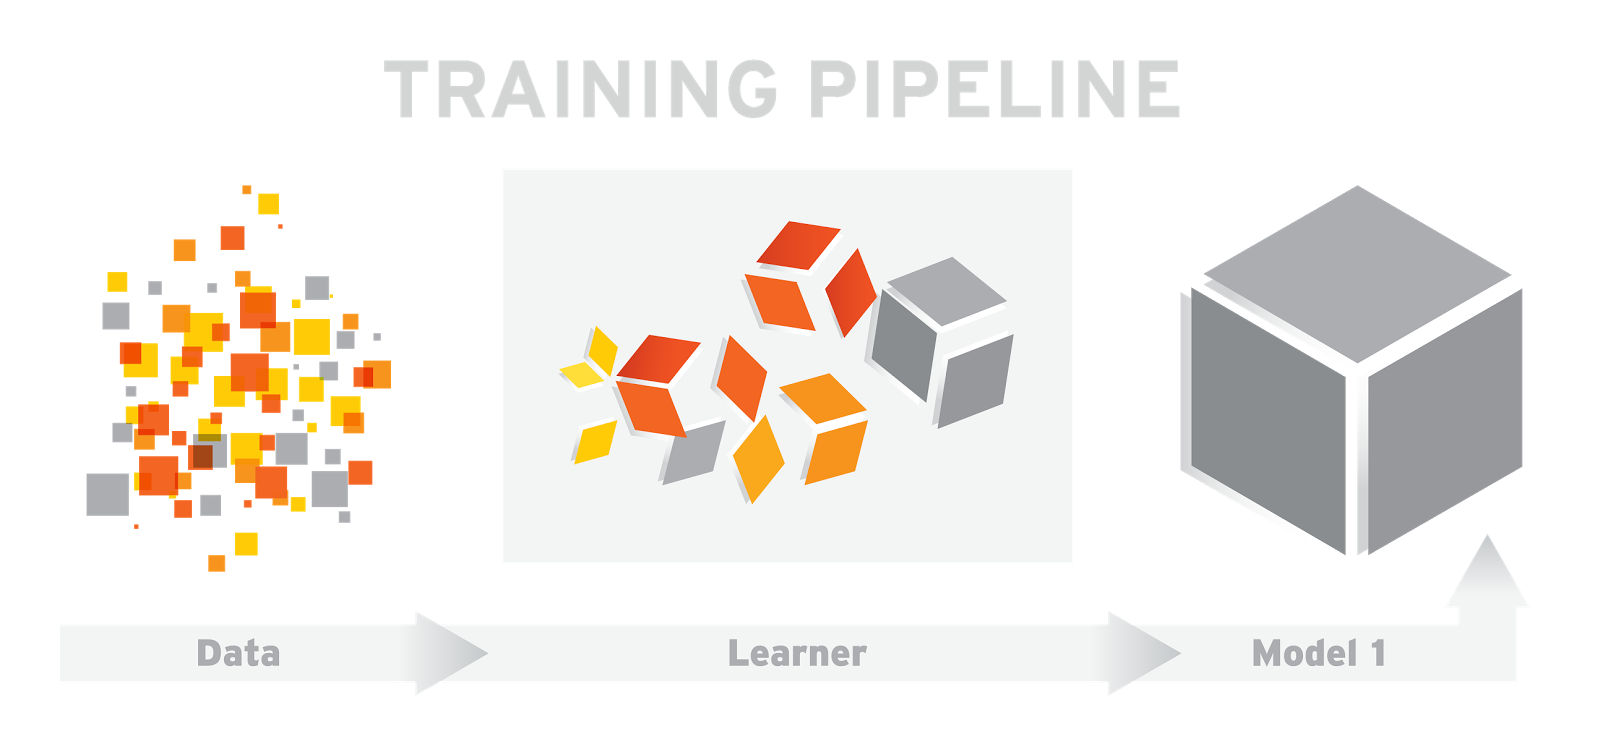 Tensor_Flow_Diagram1_TrainingPipeline_FINAL